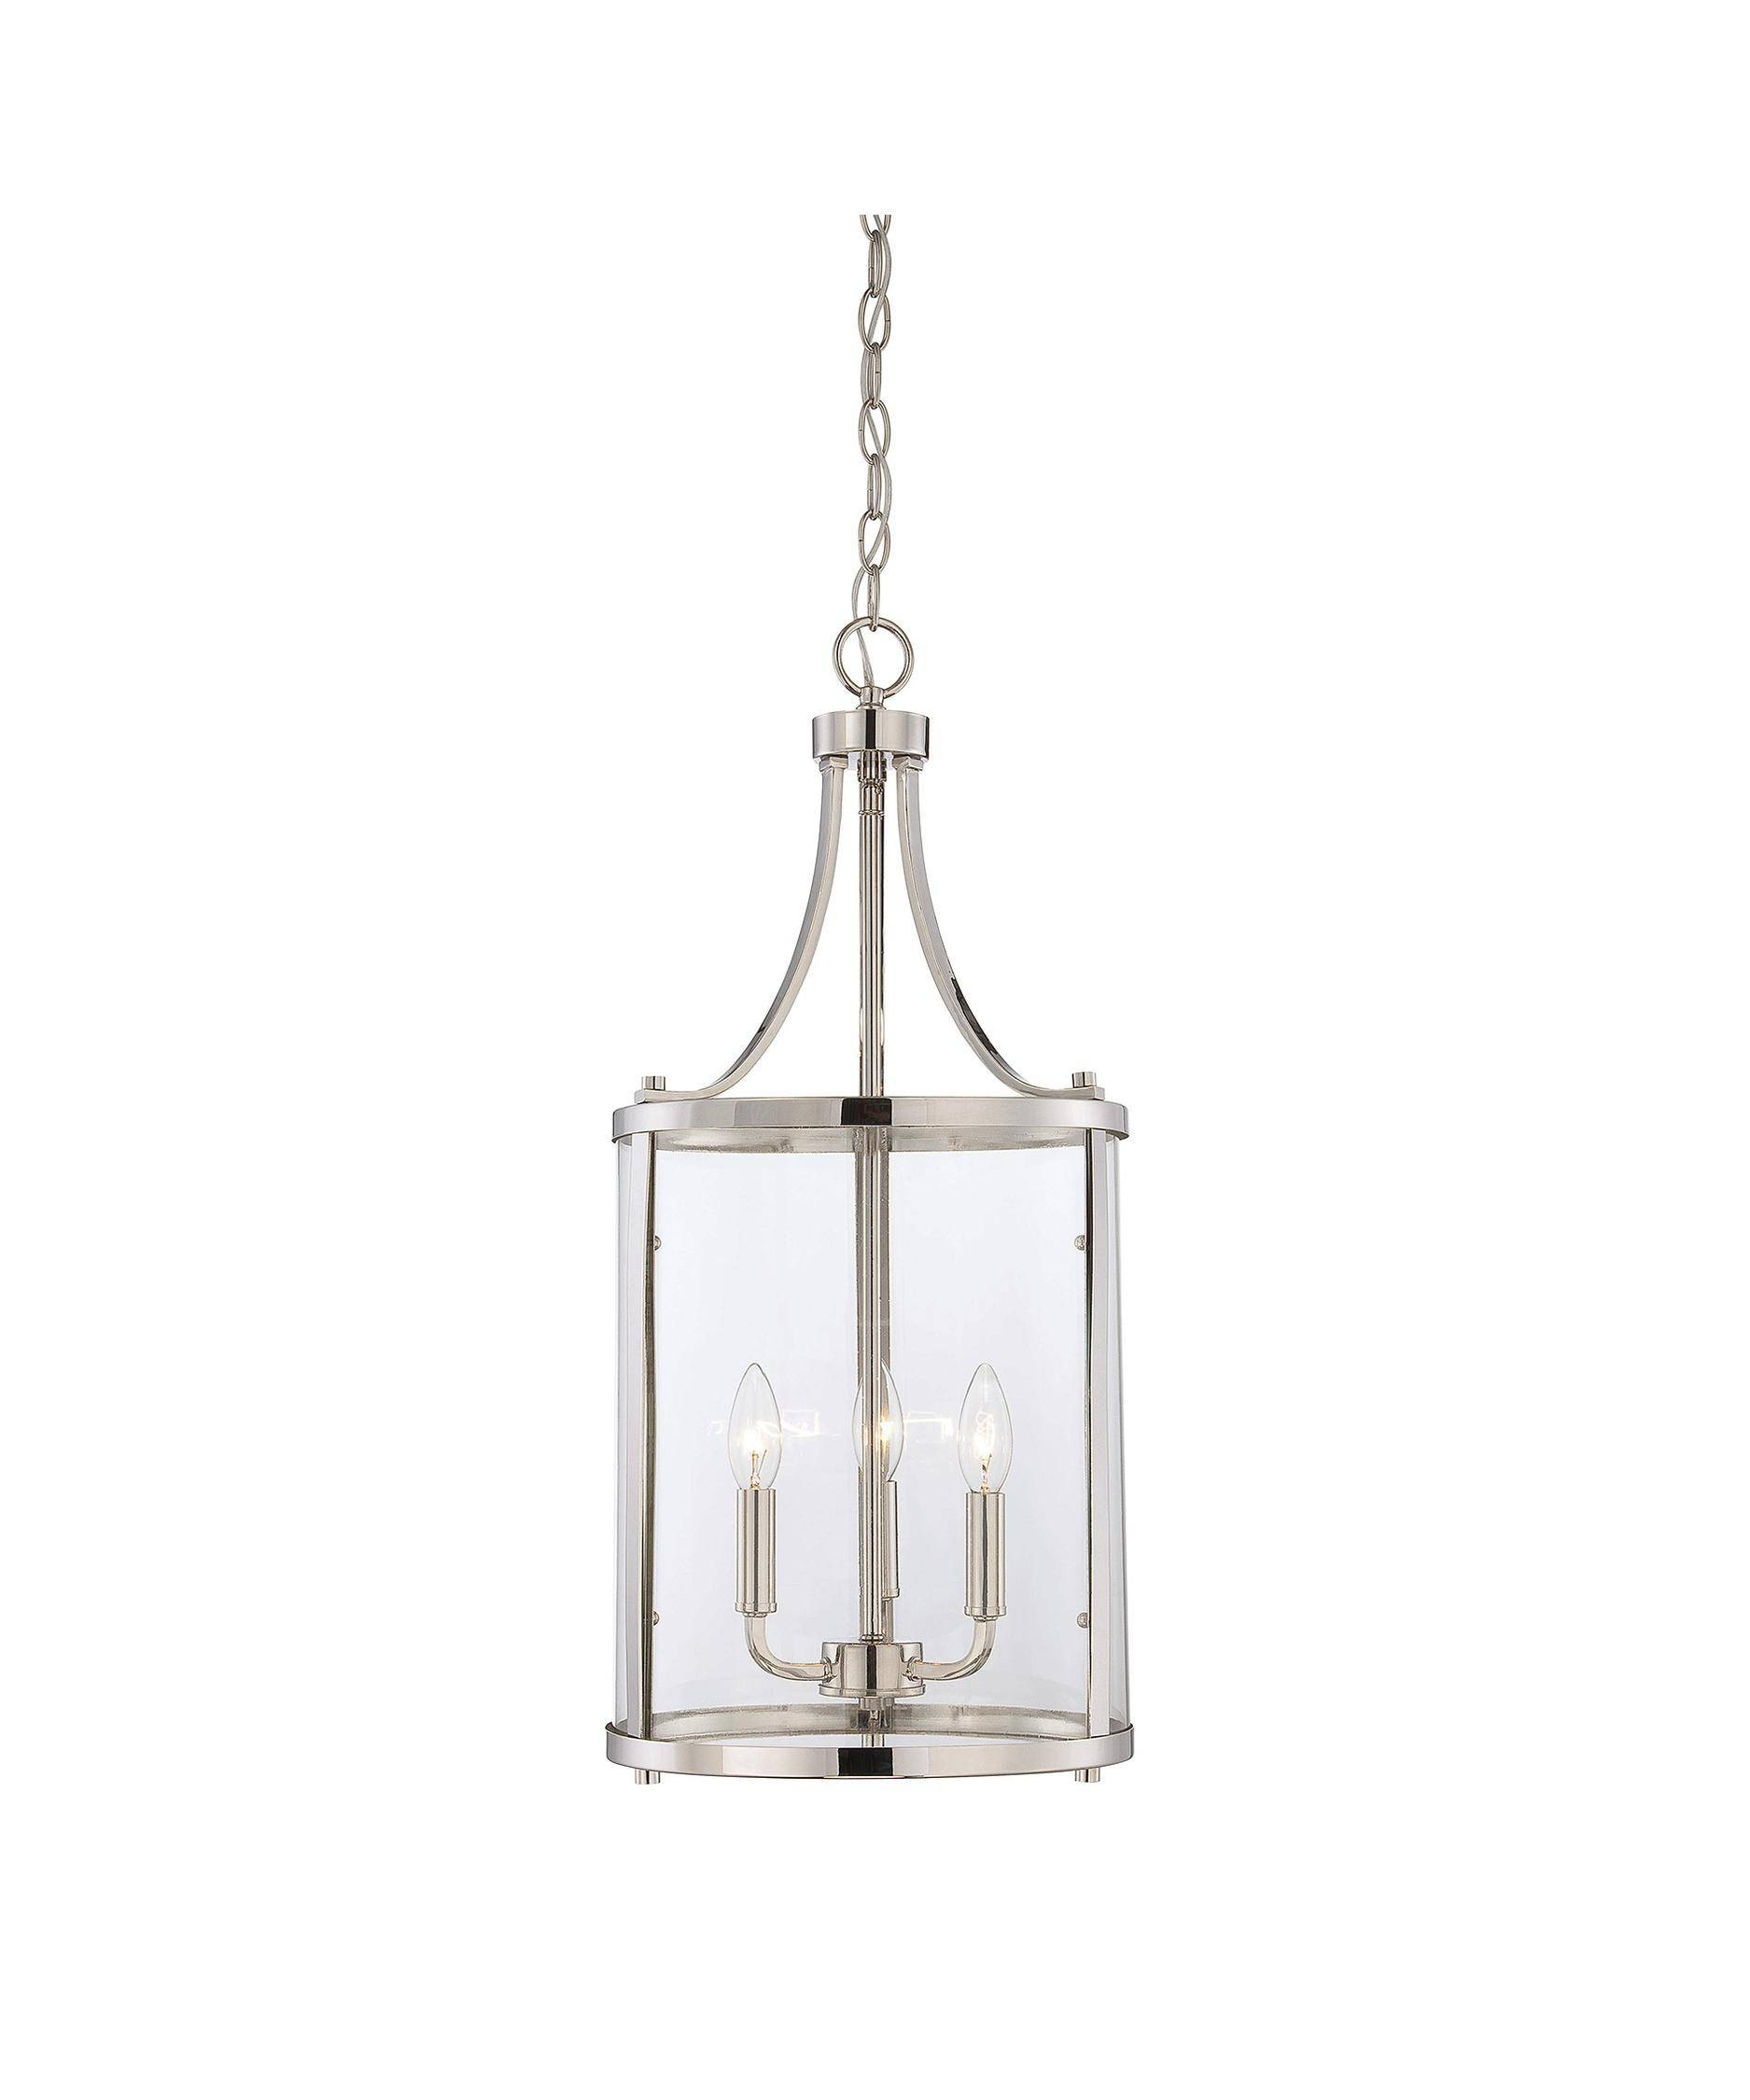 Savoy House 7 1040 3 Penrose 12 Inch Wide Foyer Pendant | Capitol With Regard To Foyer Pendant Light Fixtures (View 4 of 15)